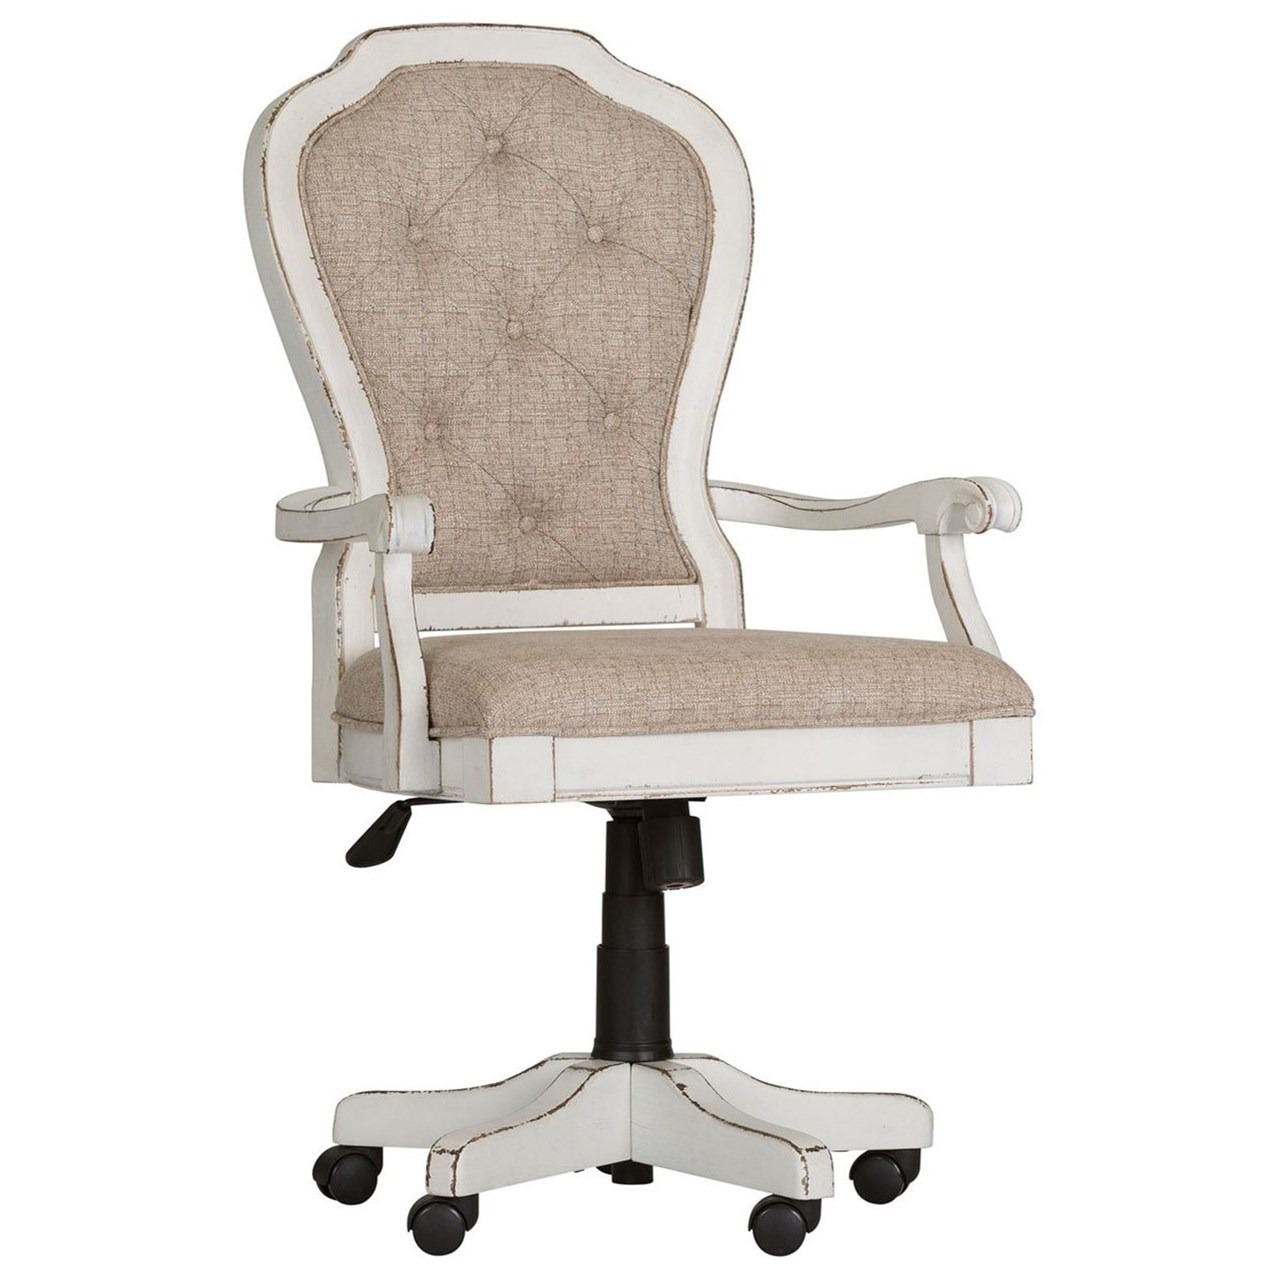 Superieur Magnolia Manor Office Traditional Executive Desk Chair With Button Tufted  Seat Back By Vendor 5349